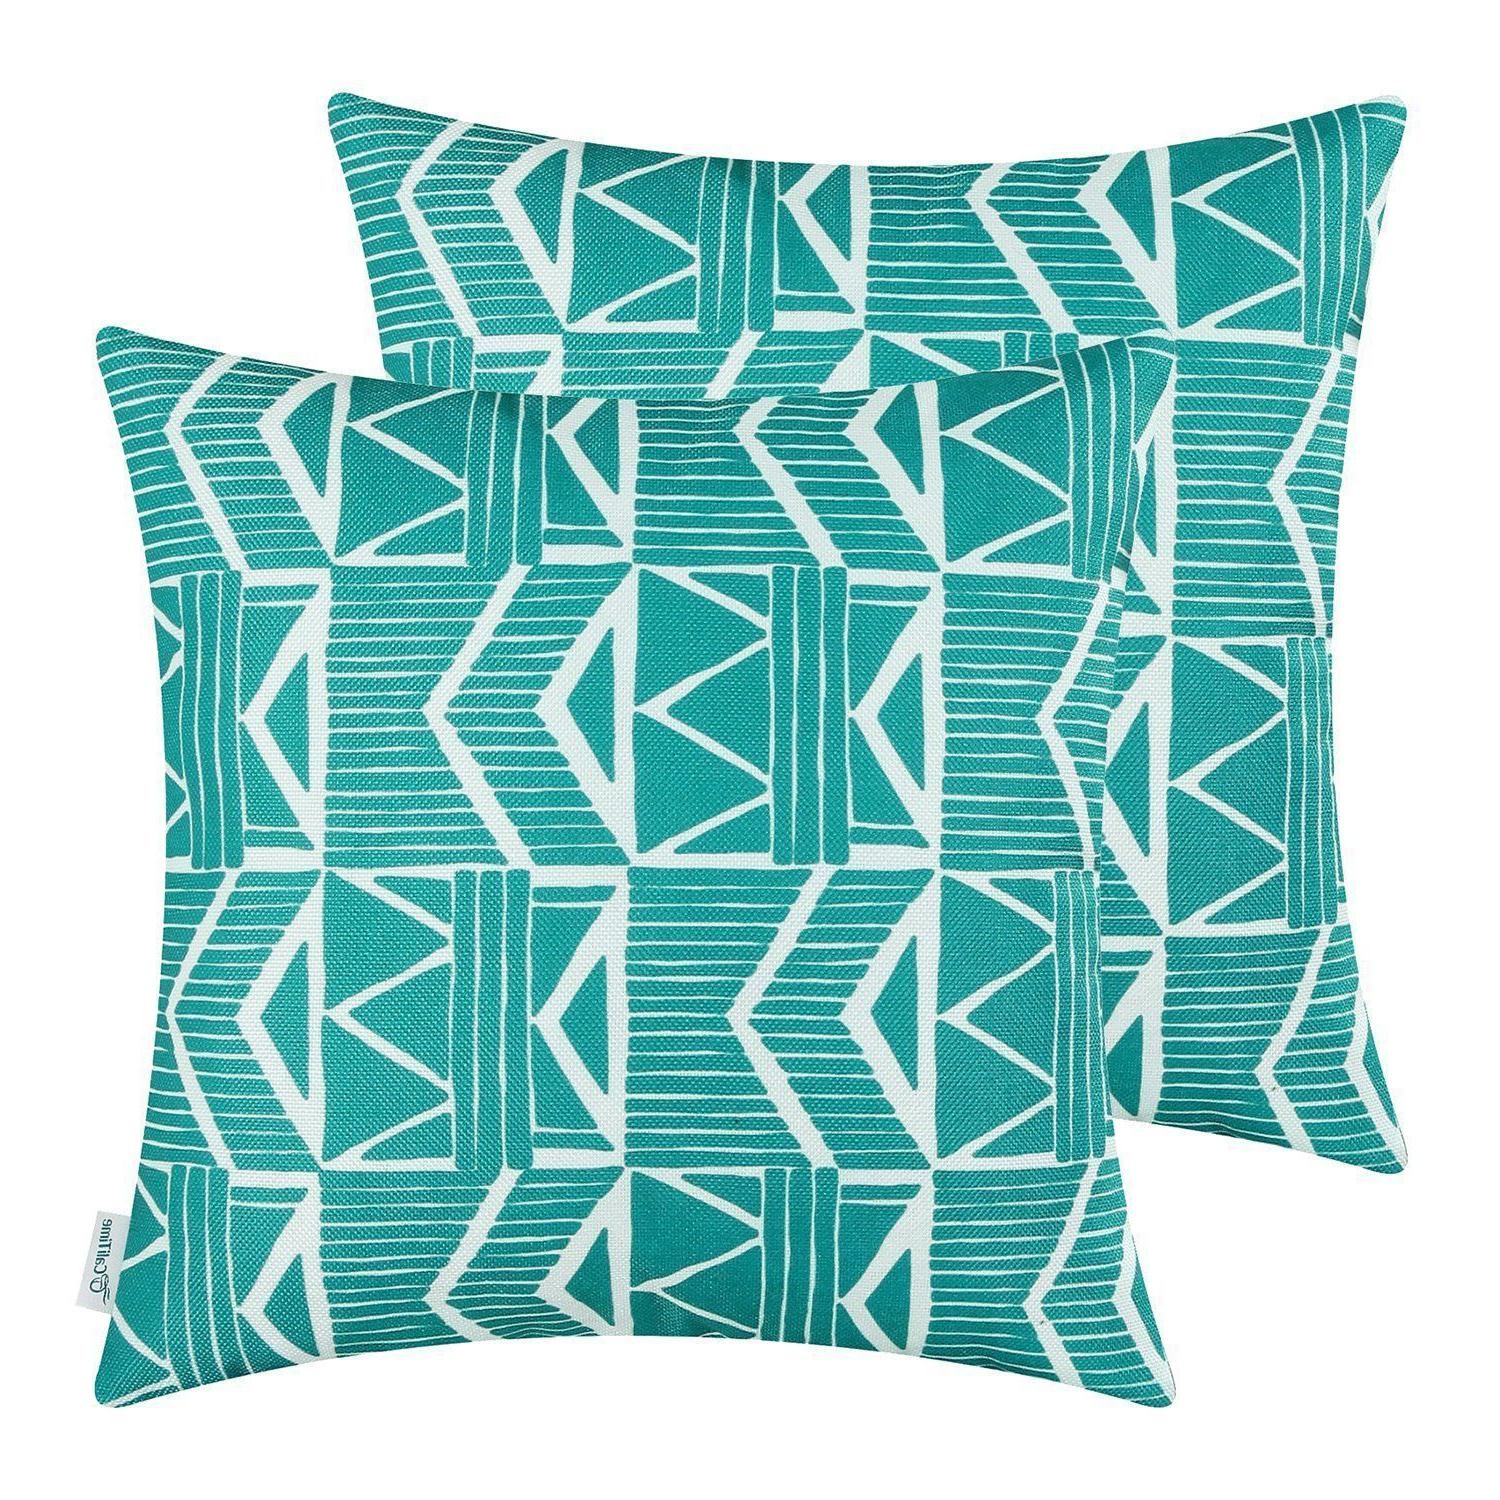 Teal Blue Southwest Modern, CaliTime Throw Pillow Covers 18x